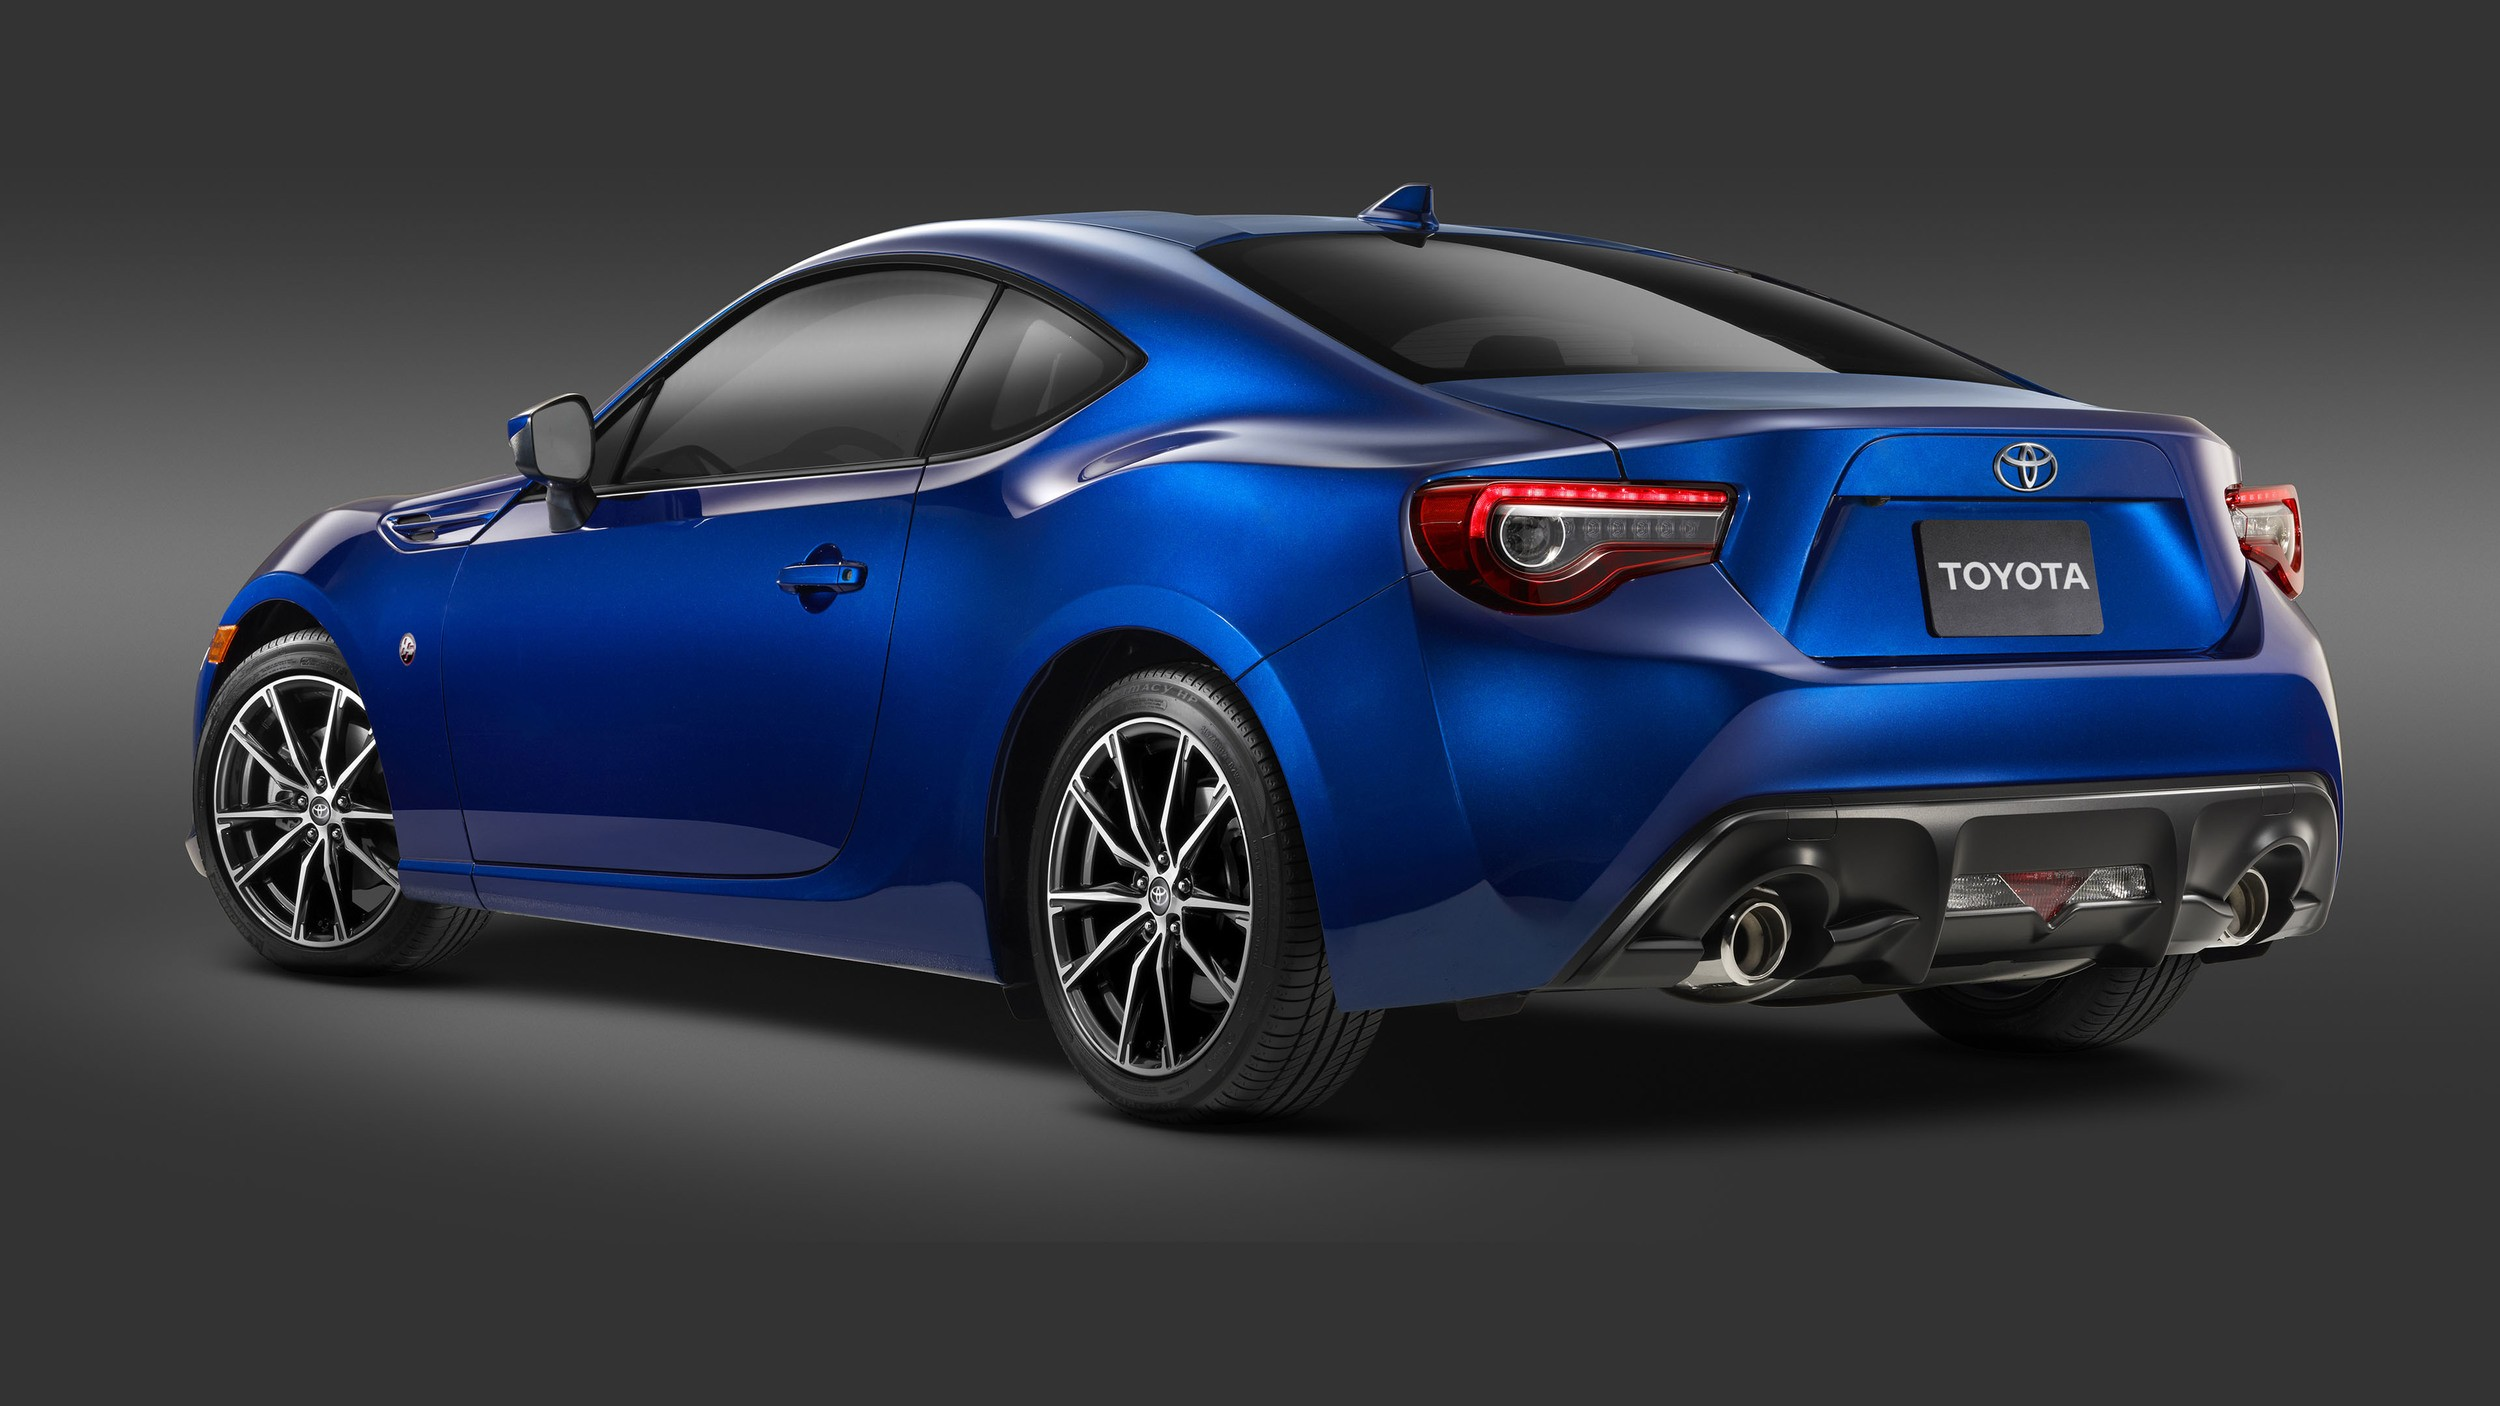 ... 2017 Toyota 86 (Toyota GT86 Facelift)